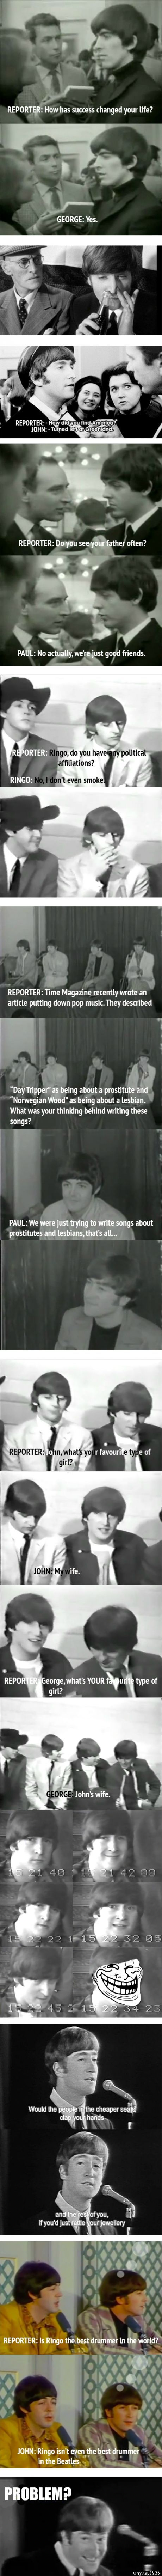 The Beatles trolling the press